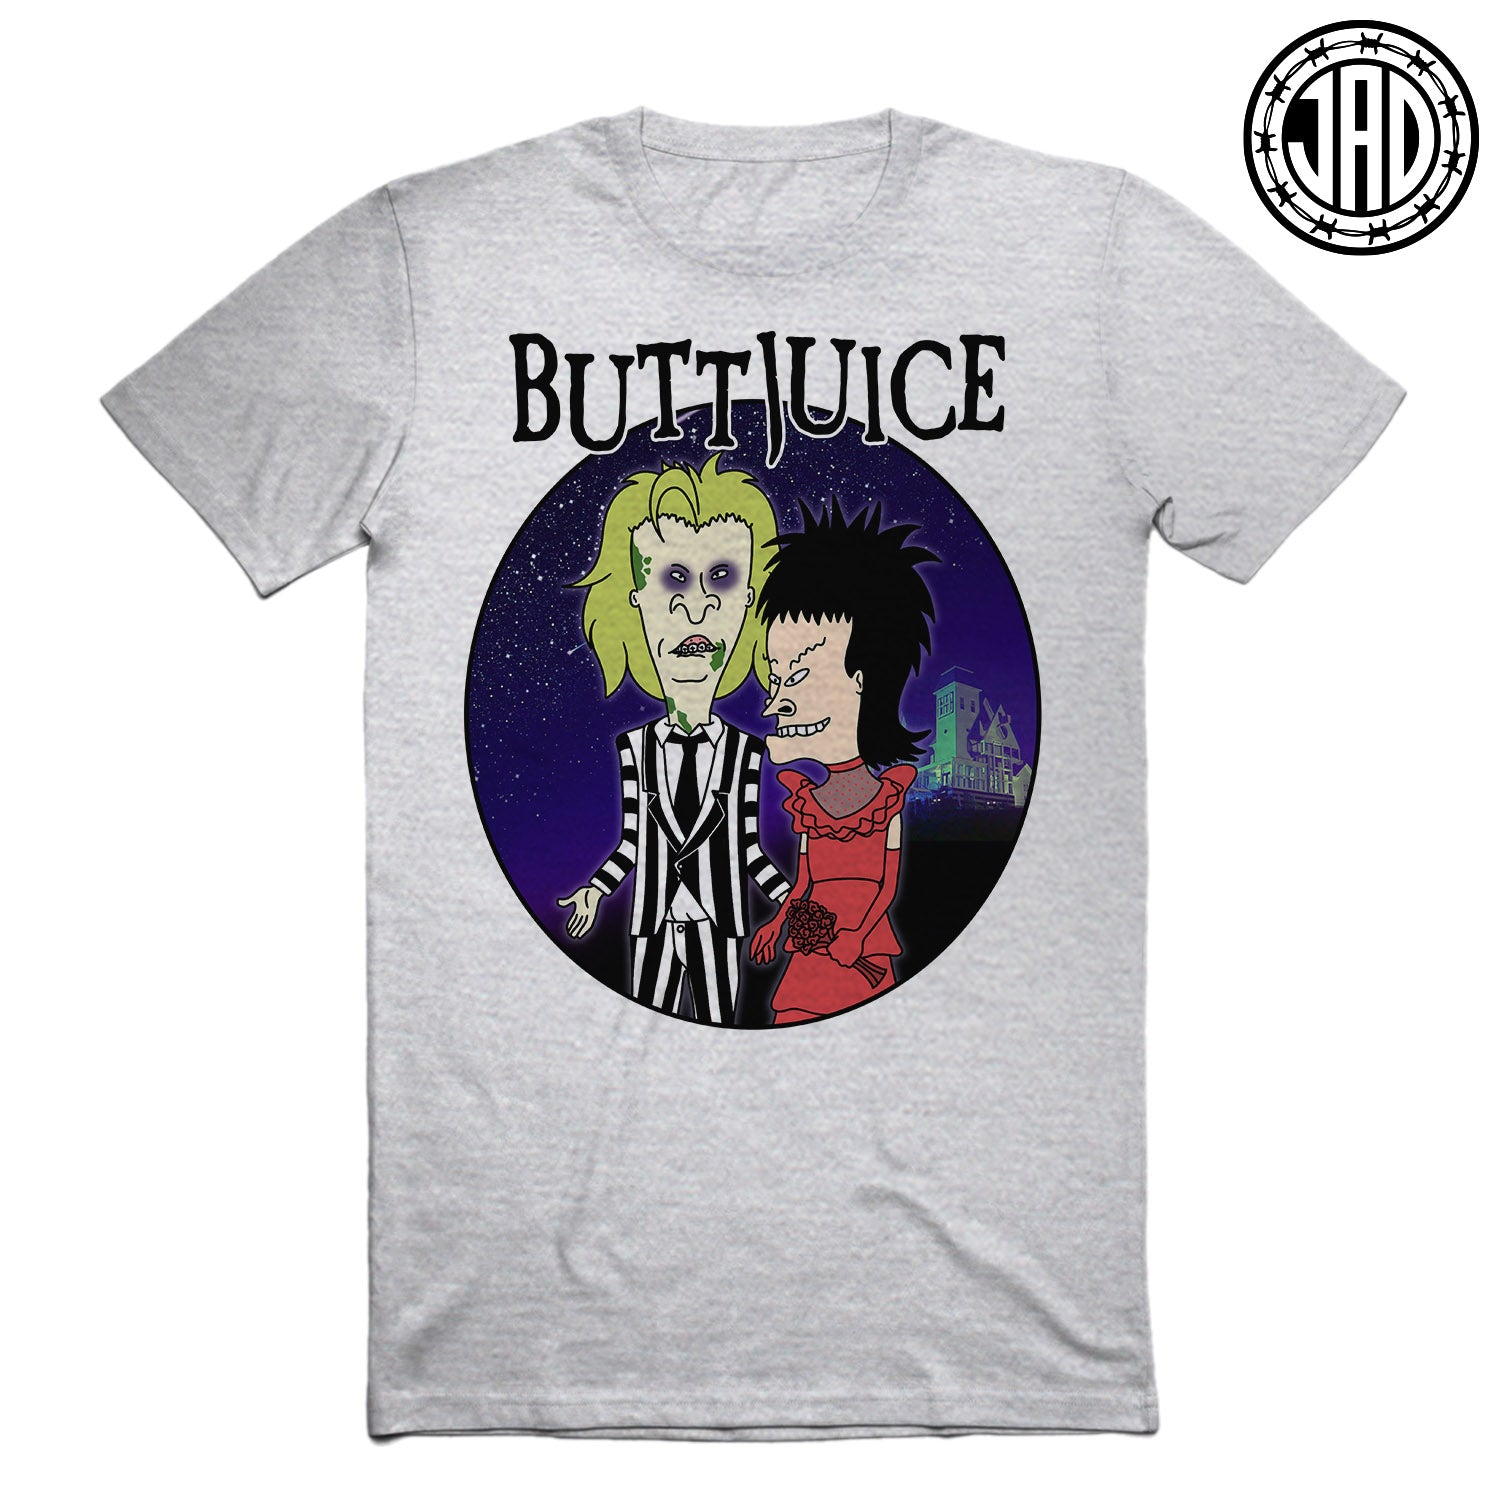 Buttjuice - Men's (Unisex) Tee